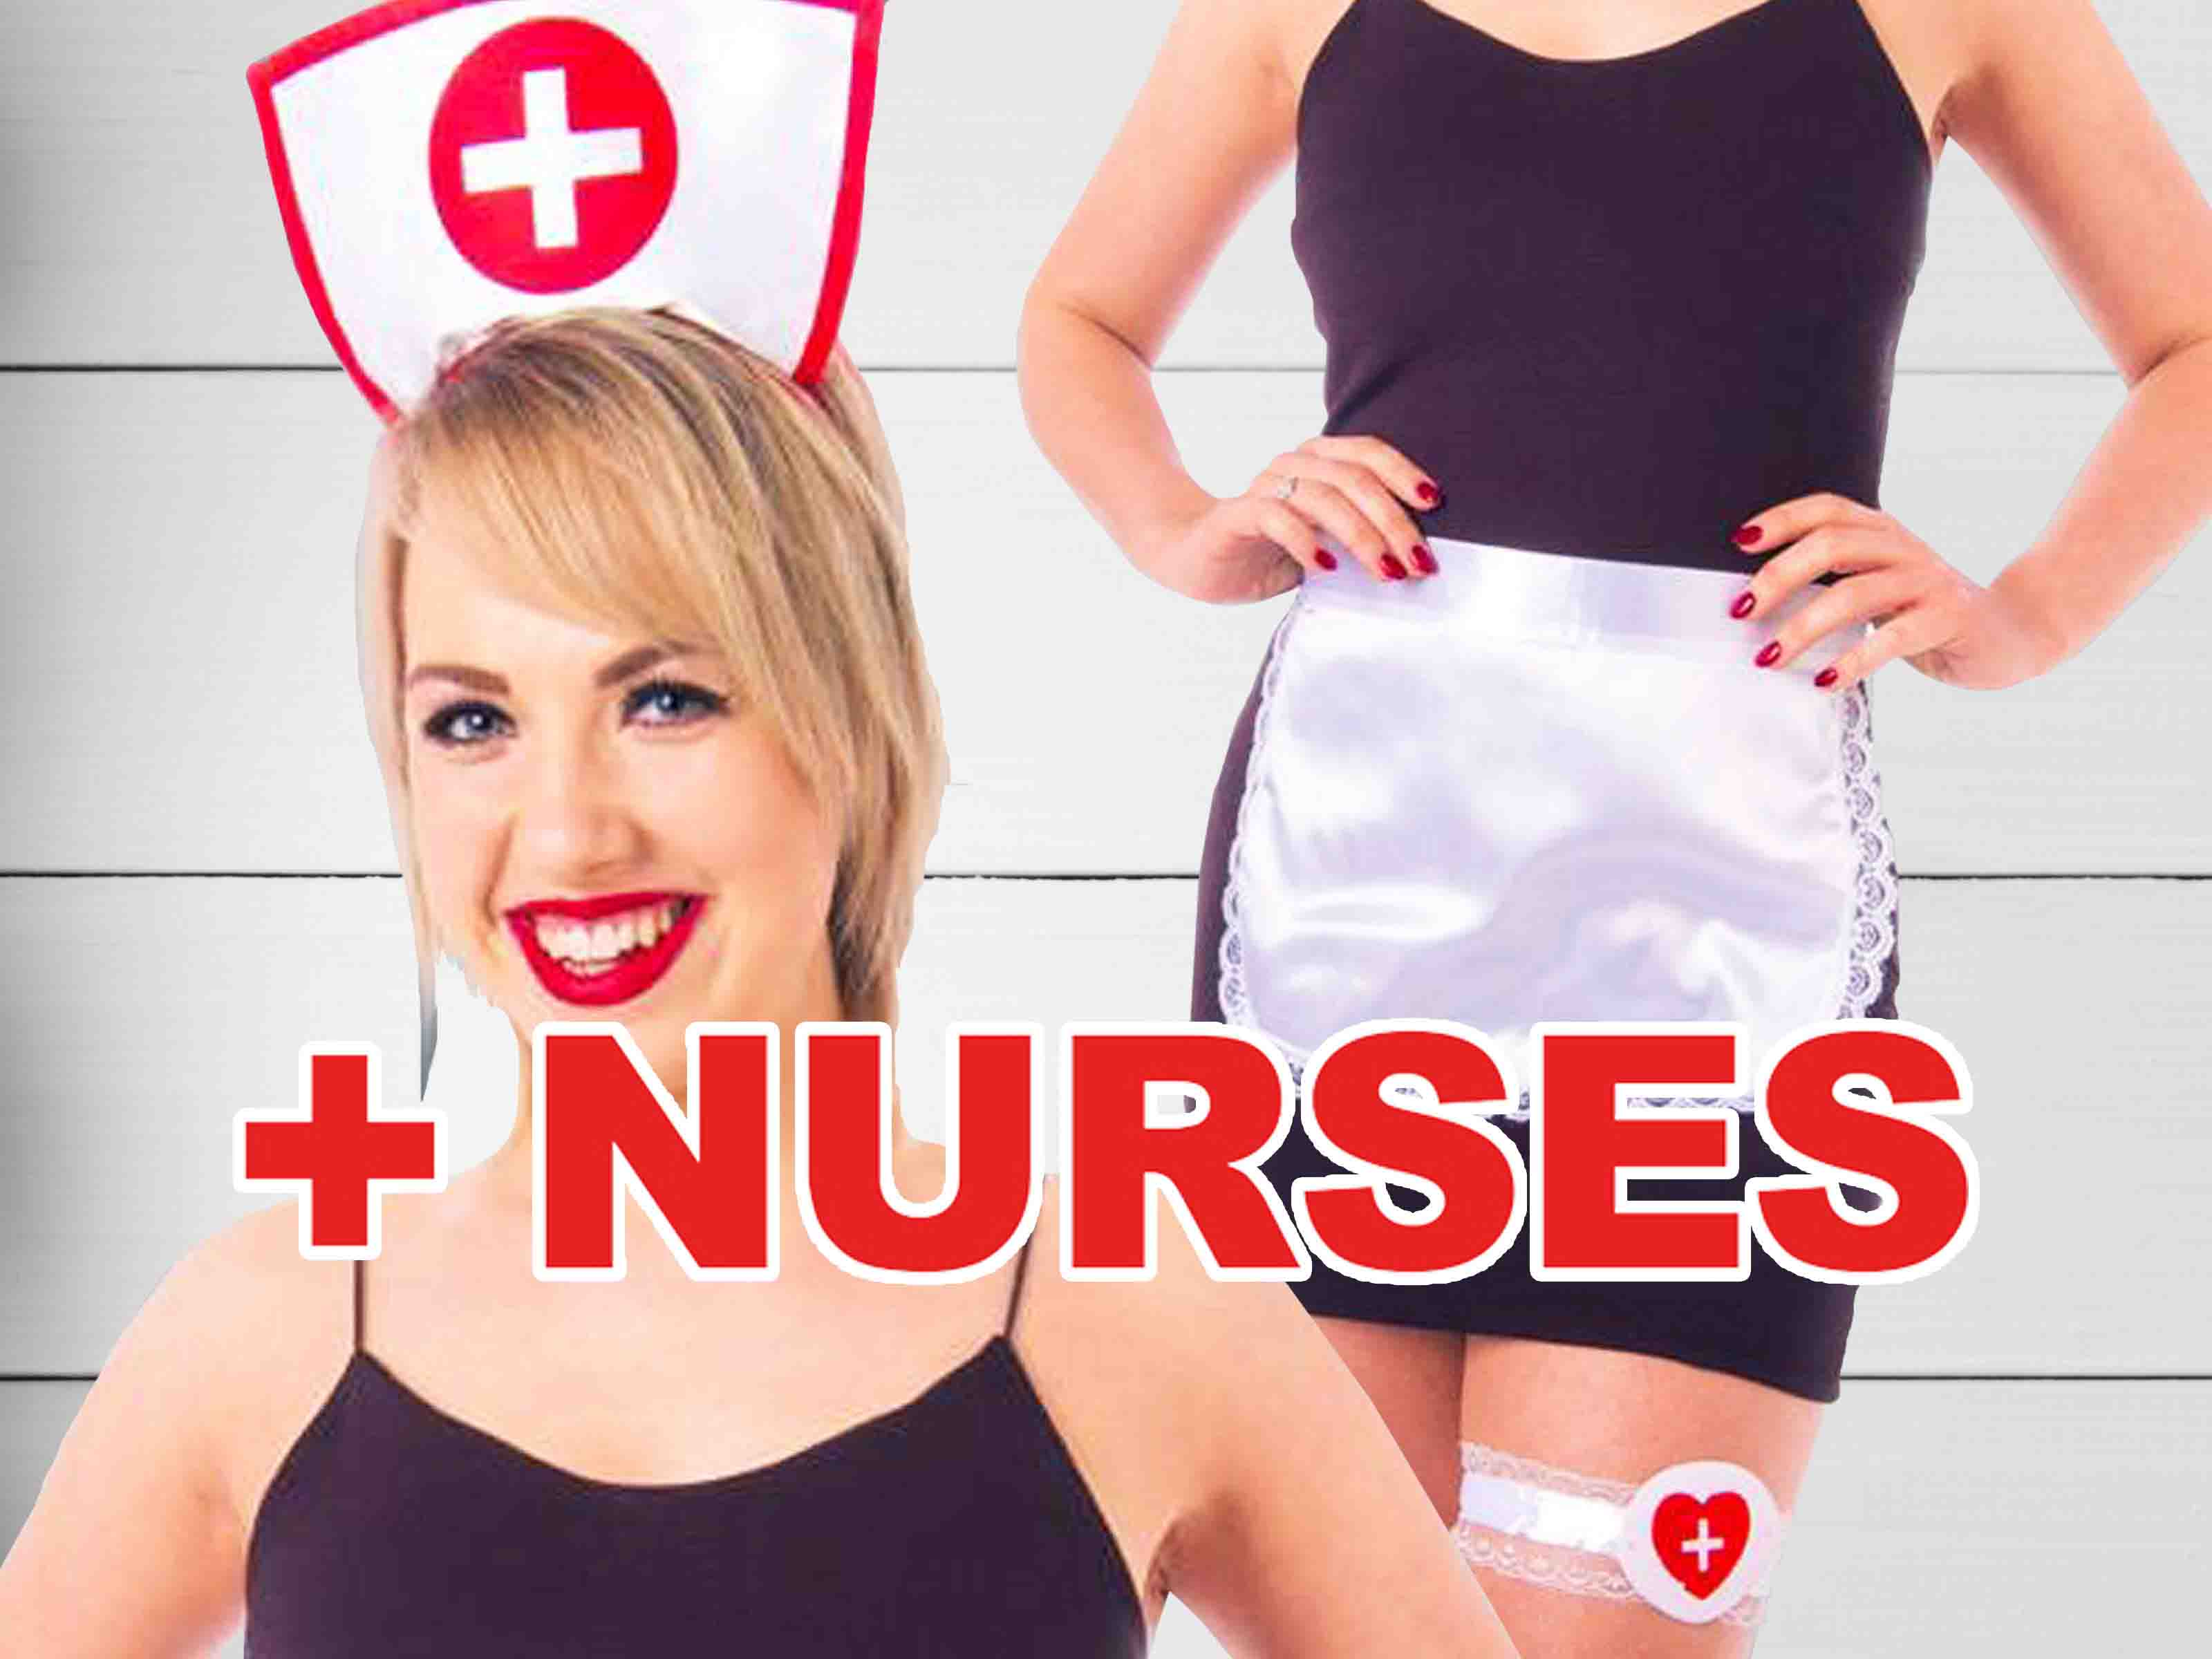 Hen Party Themes - Nurses